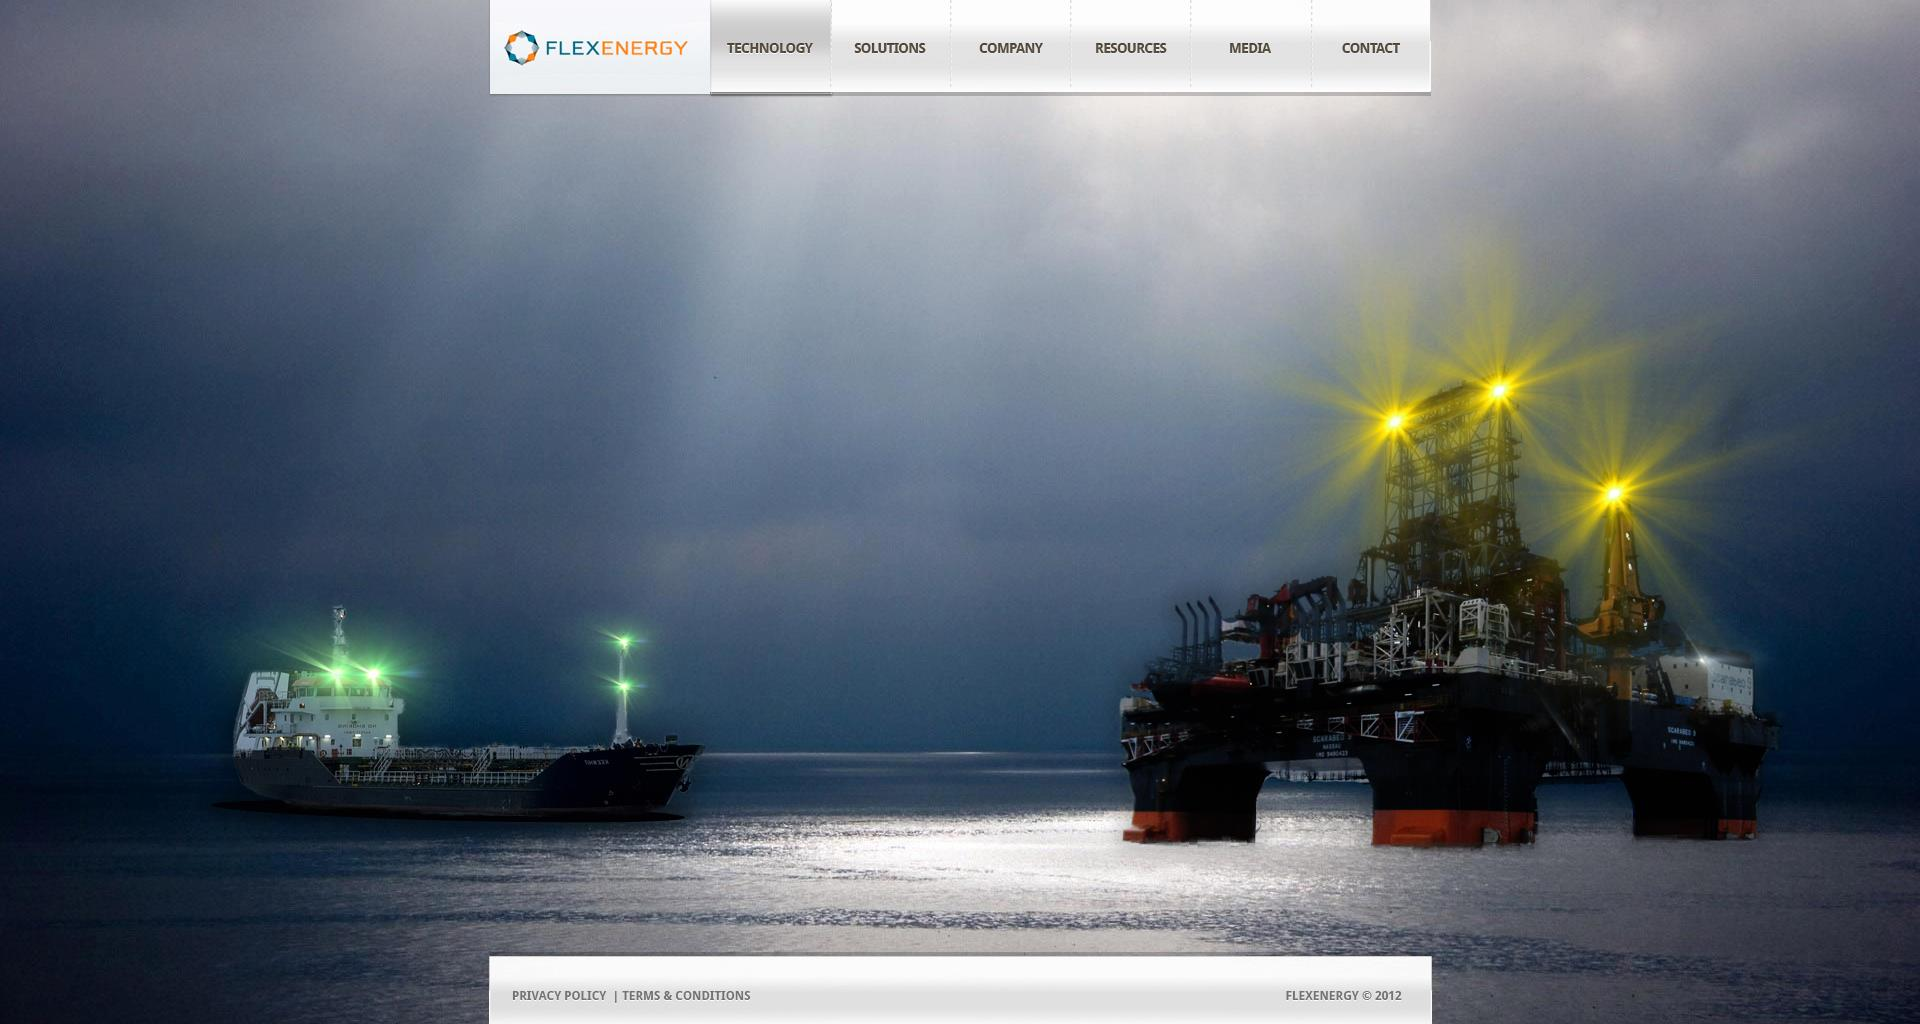 Website-Design-Energy-Company.jpg